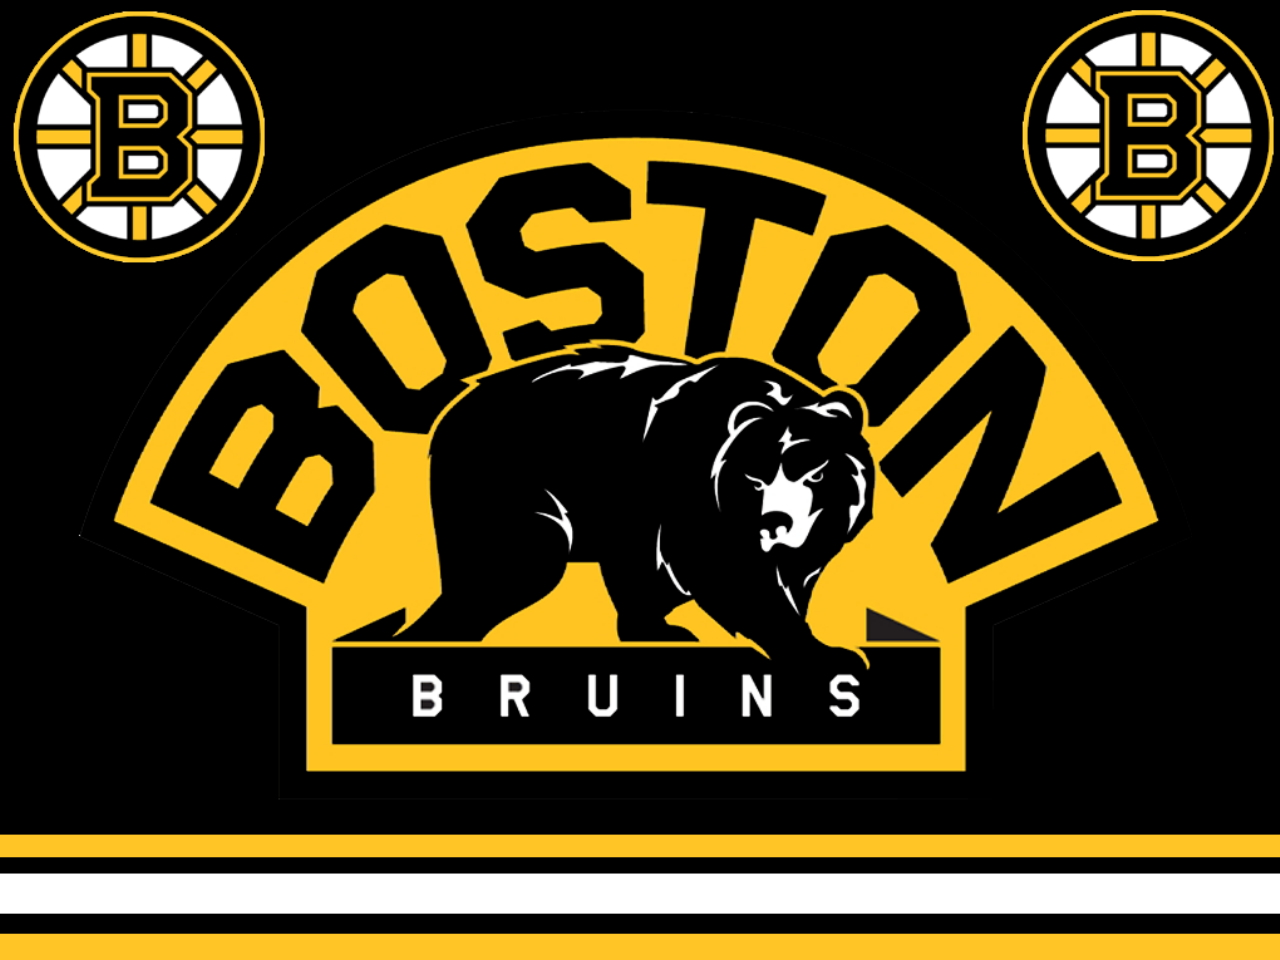 Red Sox Wallpaper Iphone X History Of All Logos All Boston Bruins Logos